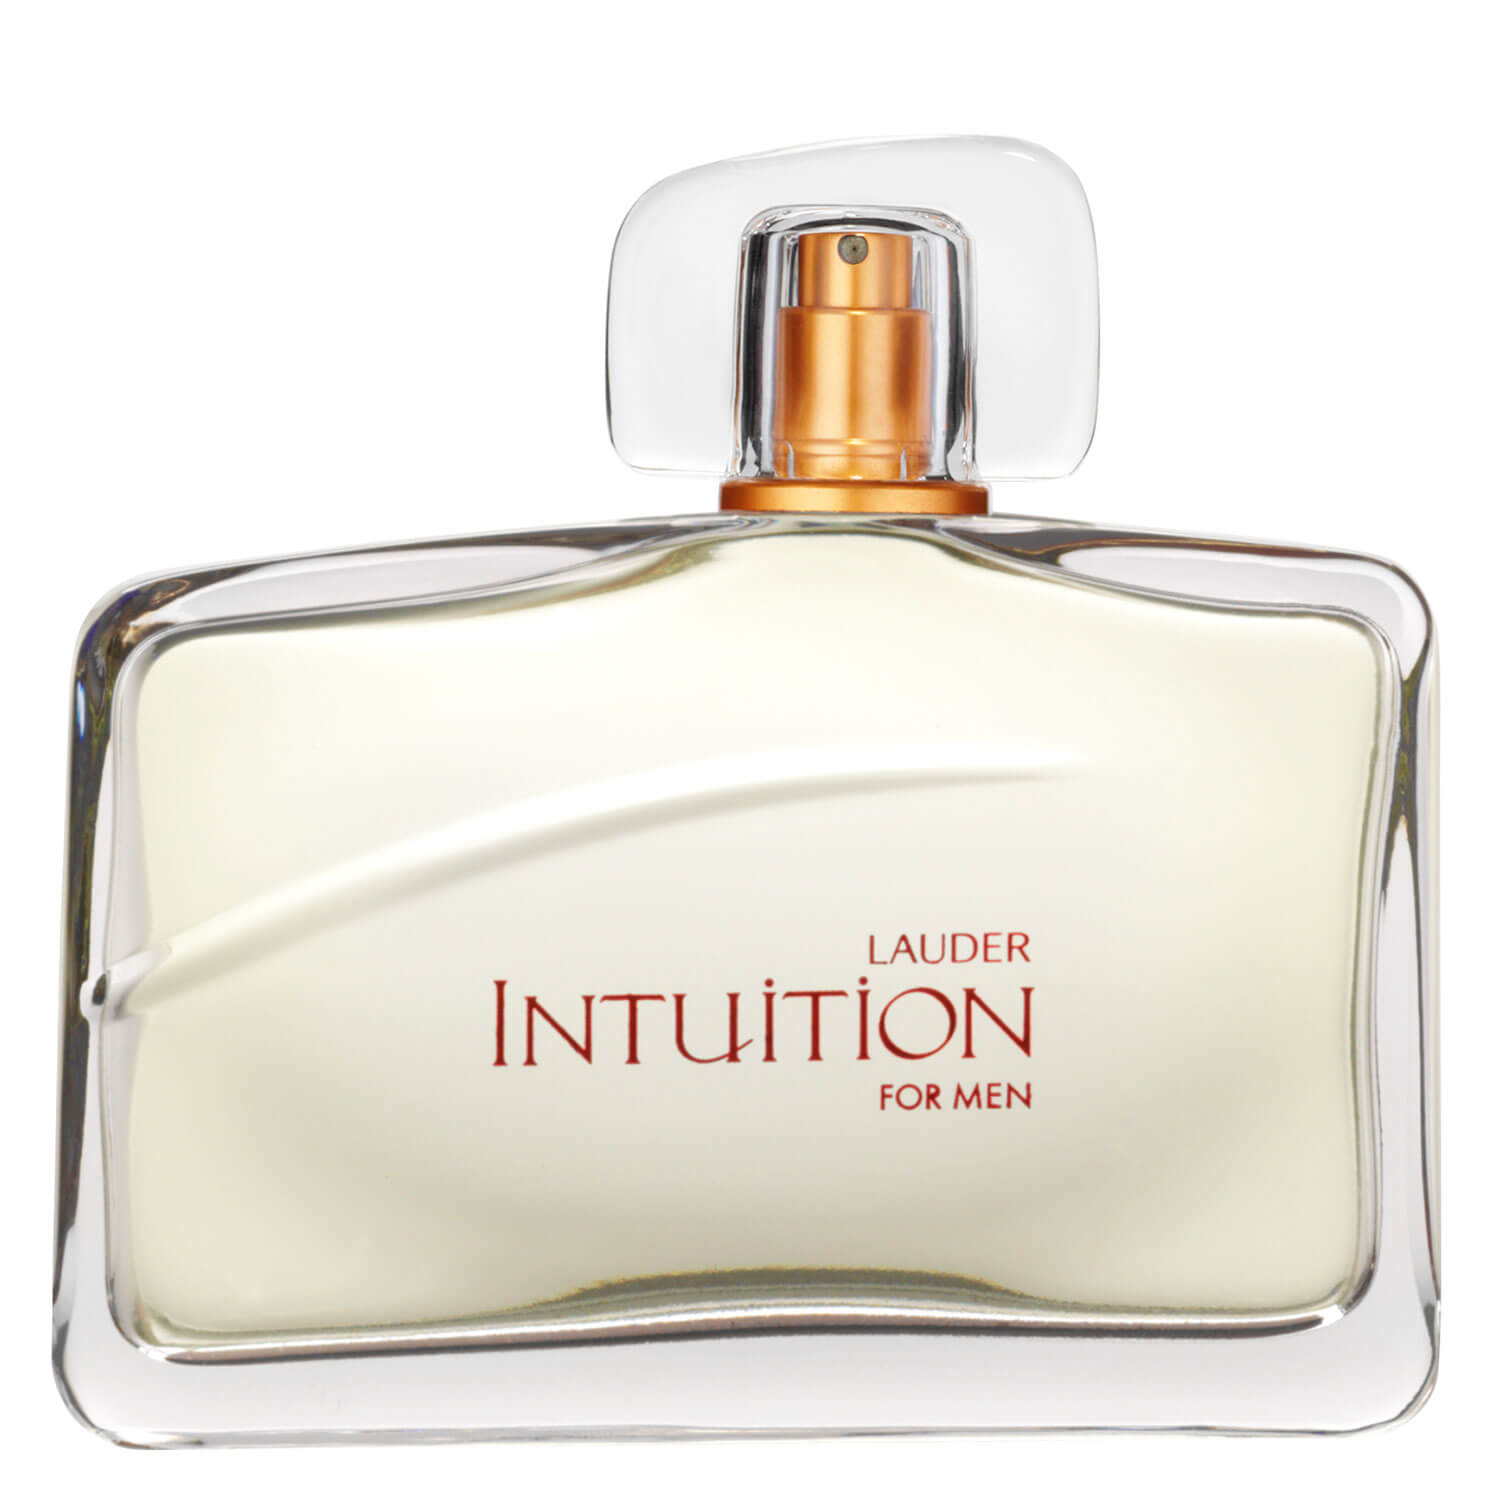 Lauder For Men - Intuition Cologne Spray - 100ml